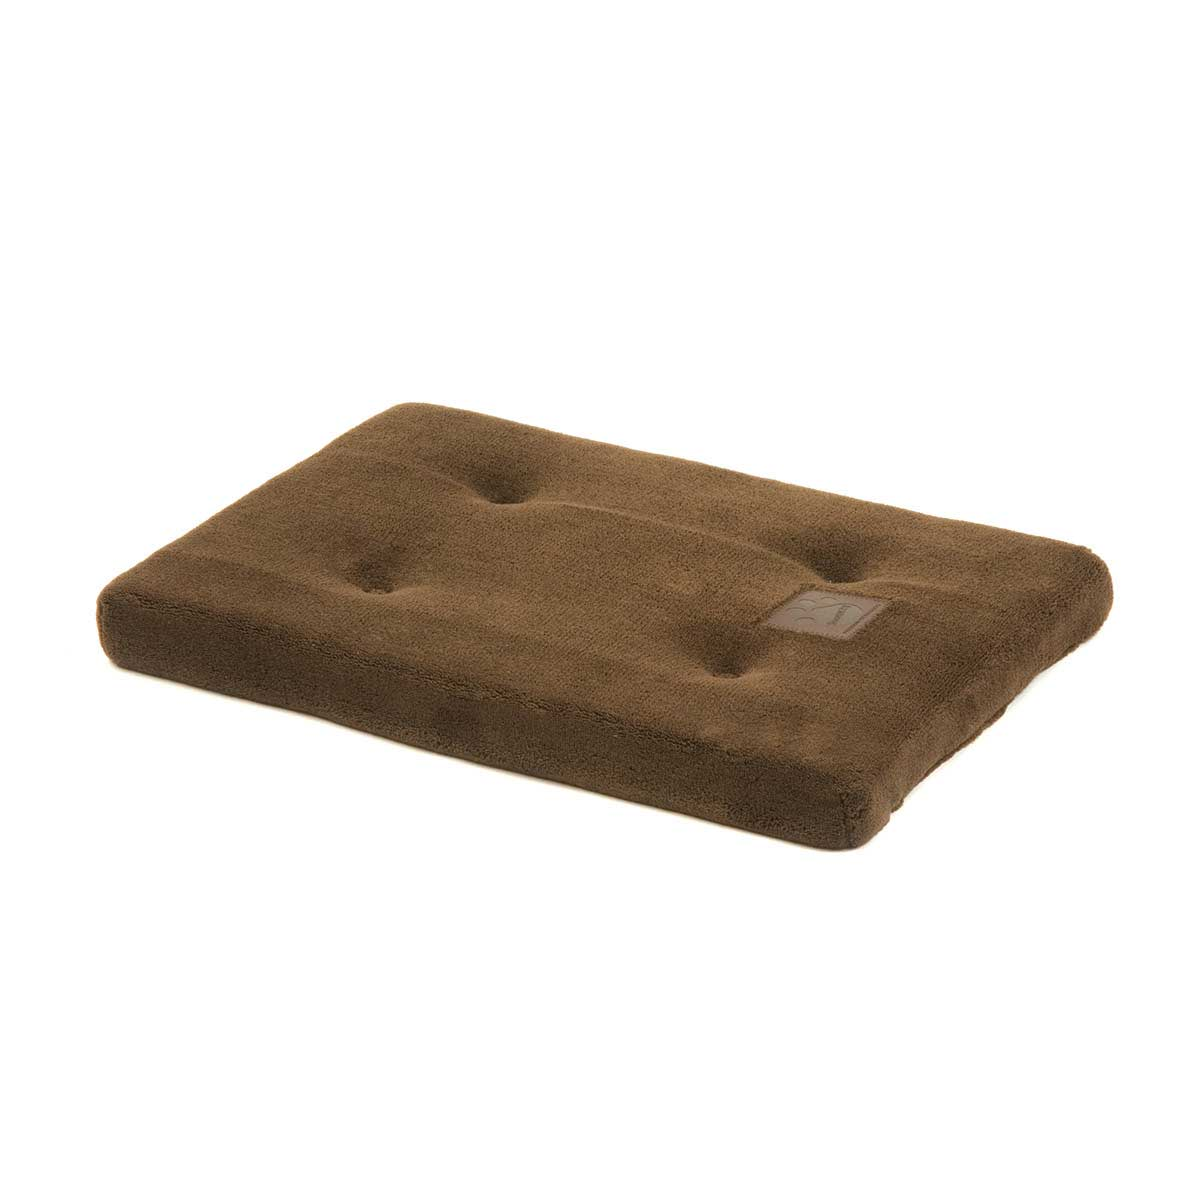 Chocolate Snoozzy Mattress for Dogs - 22.75 inches by 16 inches